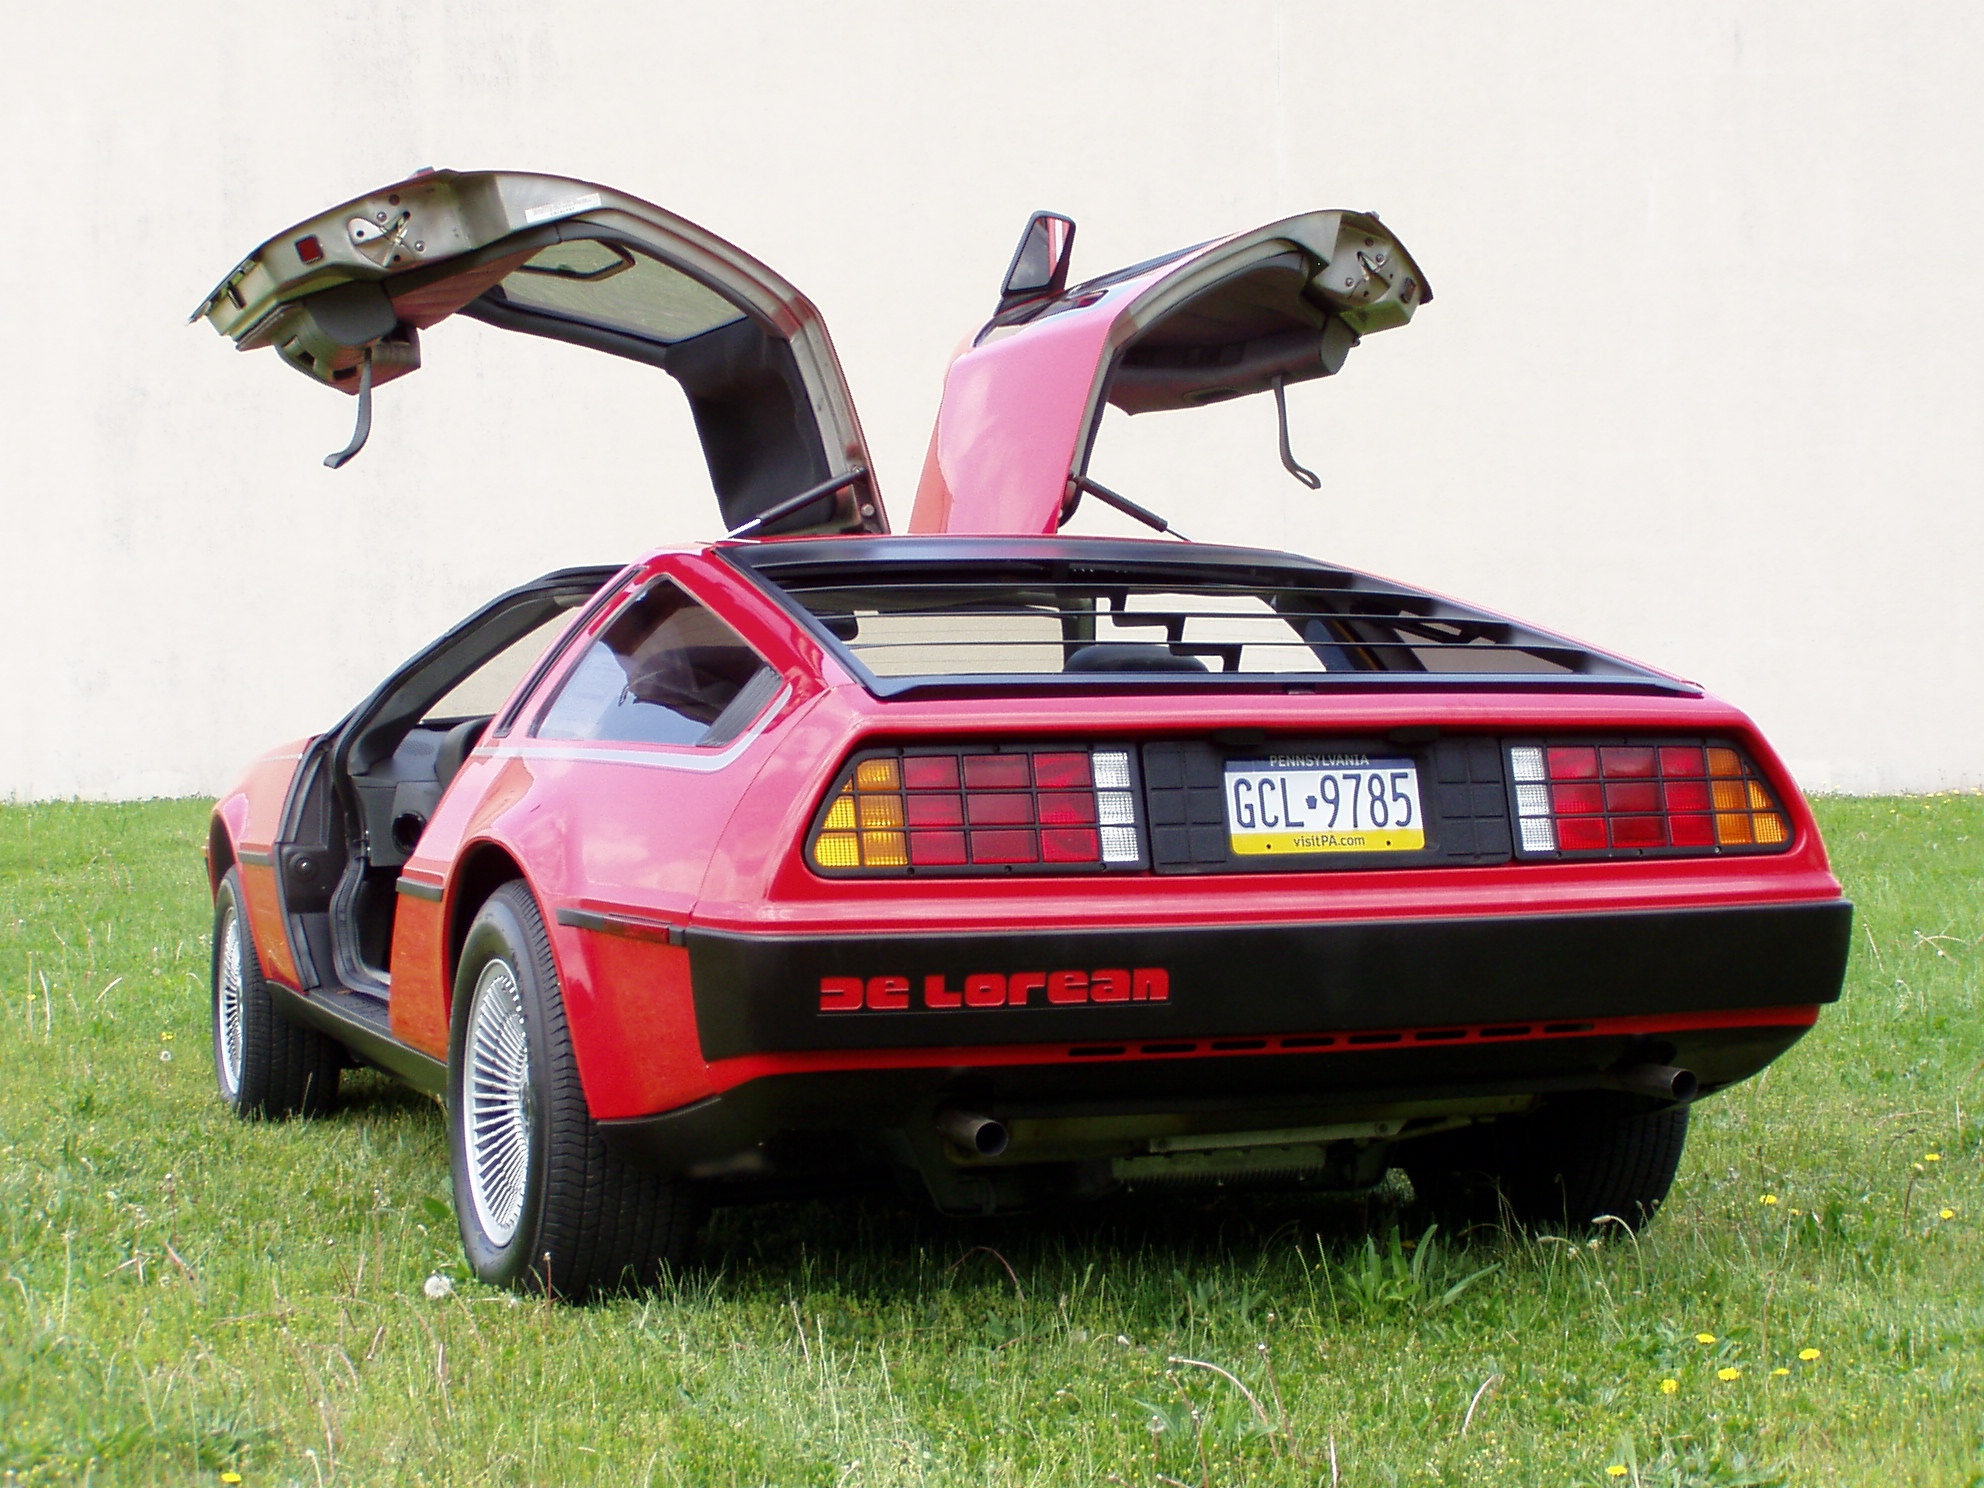 delorean-2.jpg